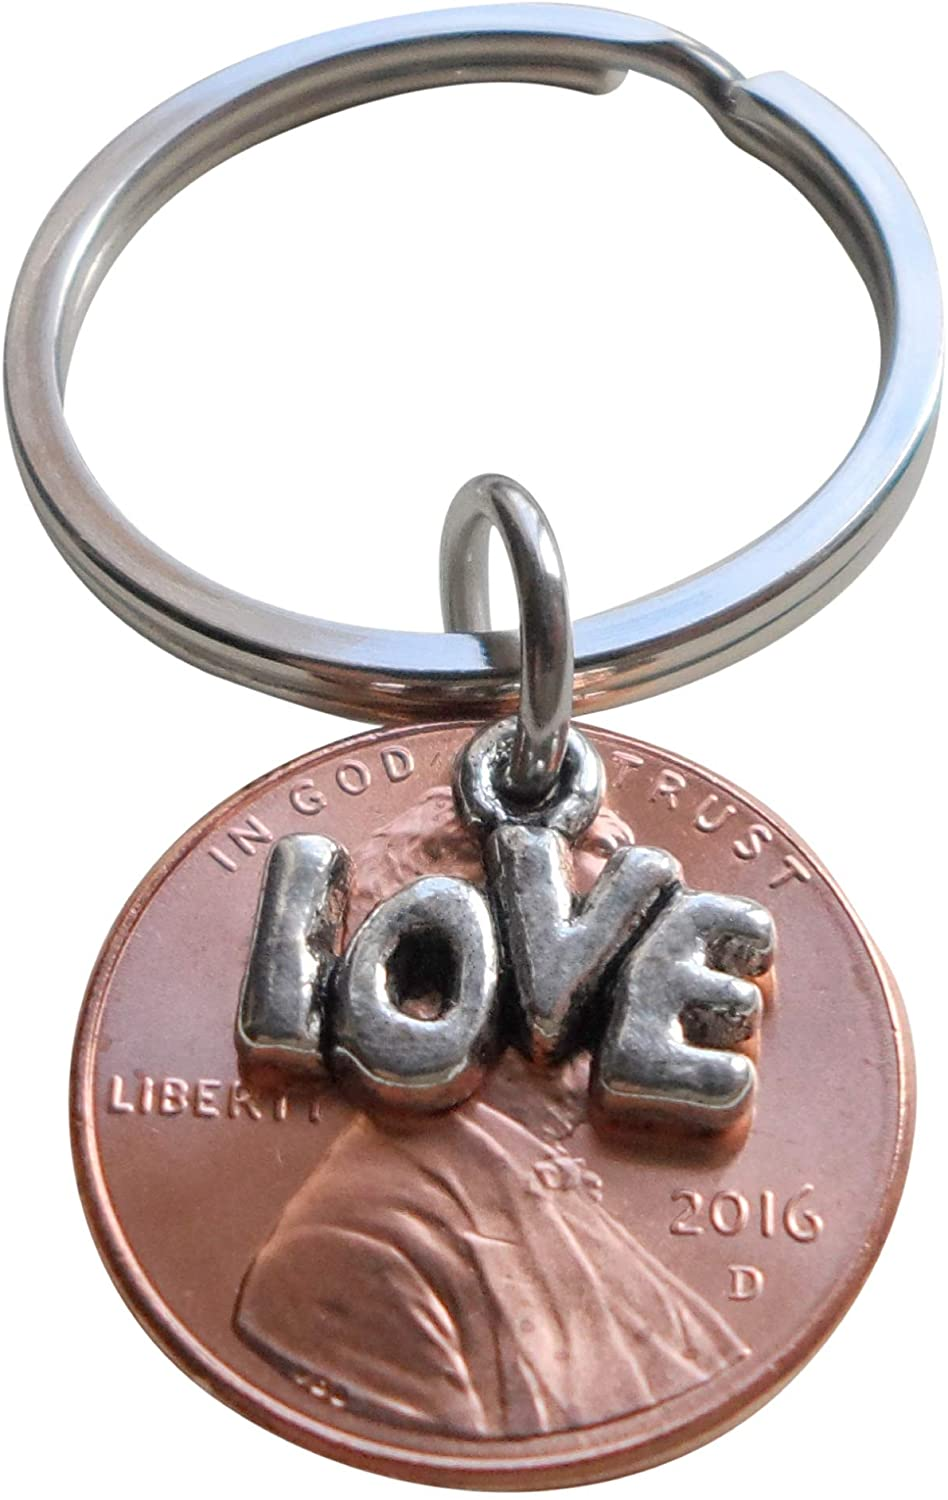 Lucky in Love 2016 Penny Keychain with Love Charm Layered Over; 4 Year Anniversary Gift, Couples Keychain